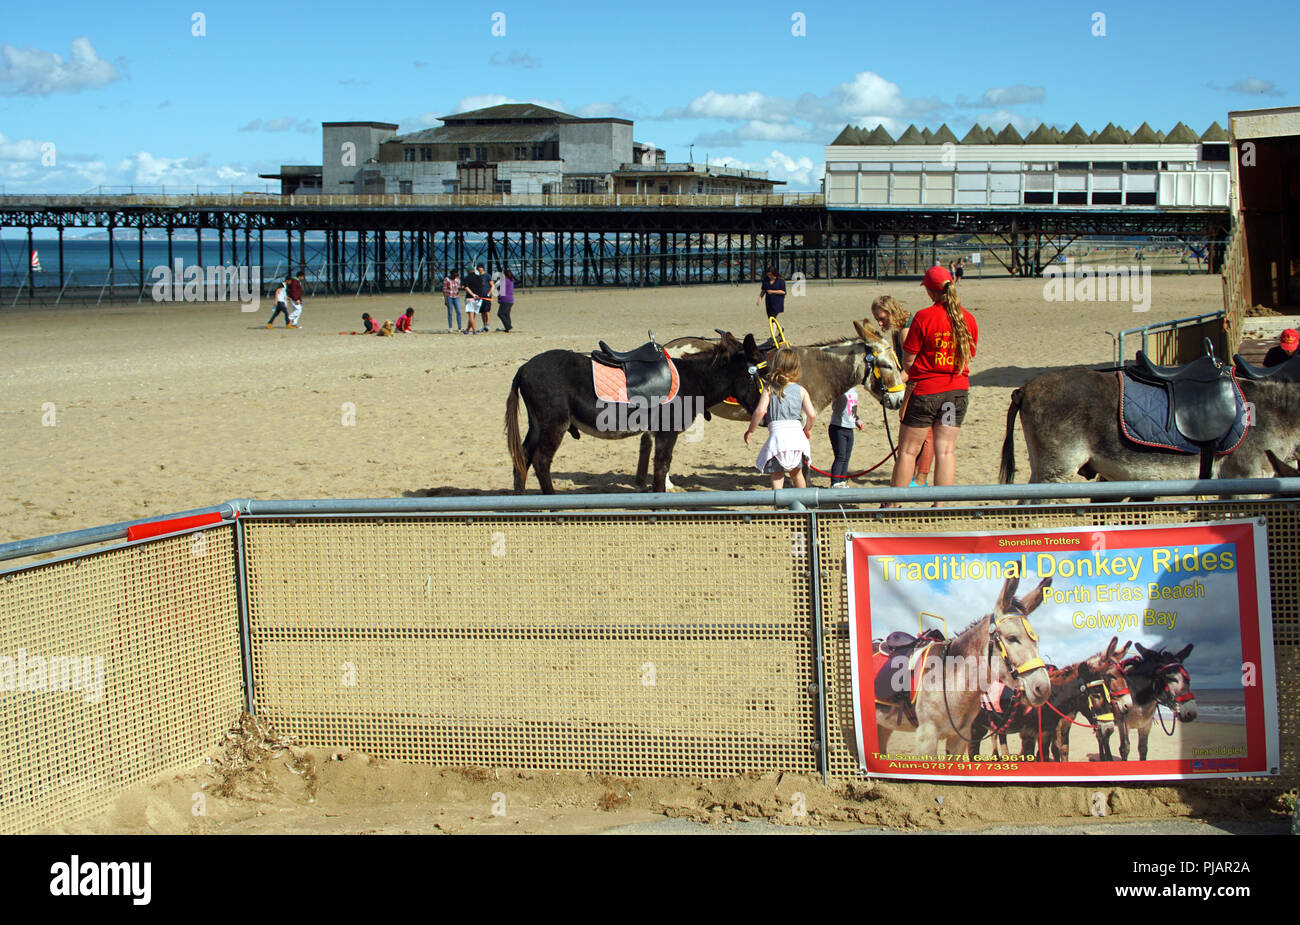 Porth Eirias Beach, Colwyn Bay August 2015. Pier has now been demolished by the council. Traditional Donkey rides. - Stock Image